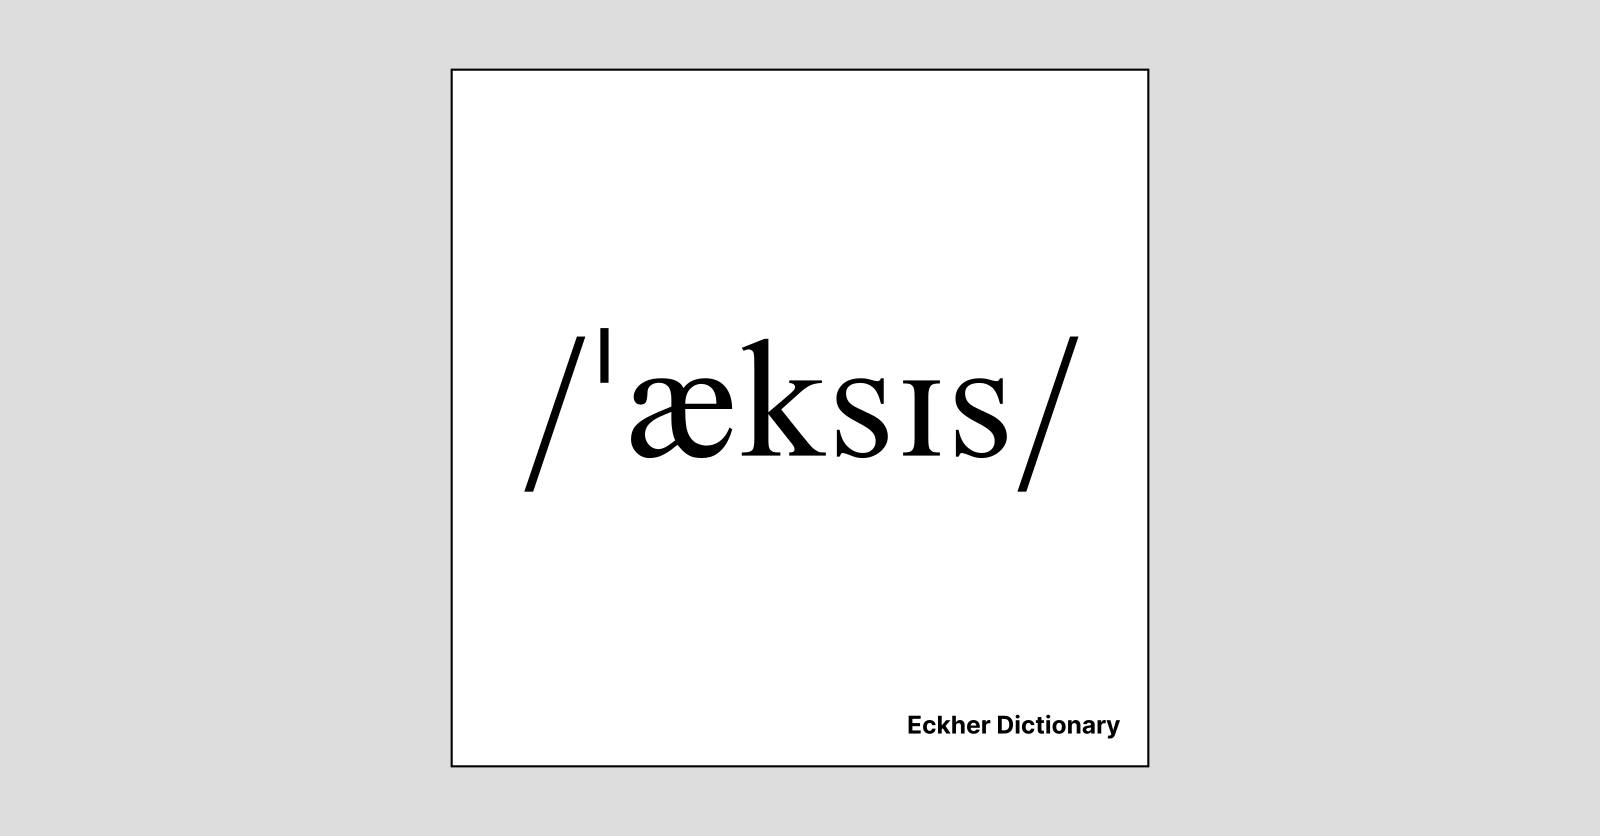 axis - Eckher Dictionary